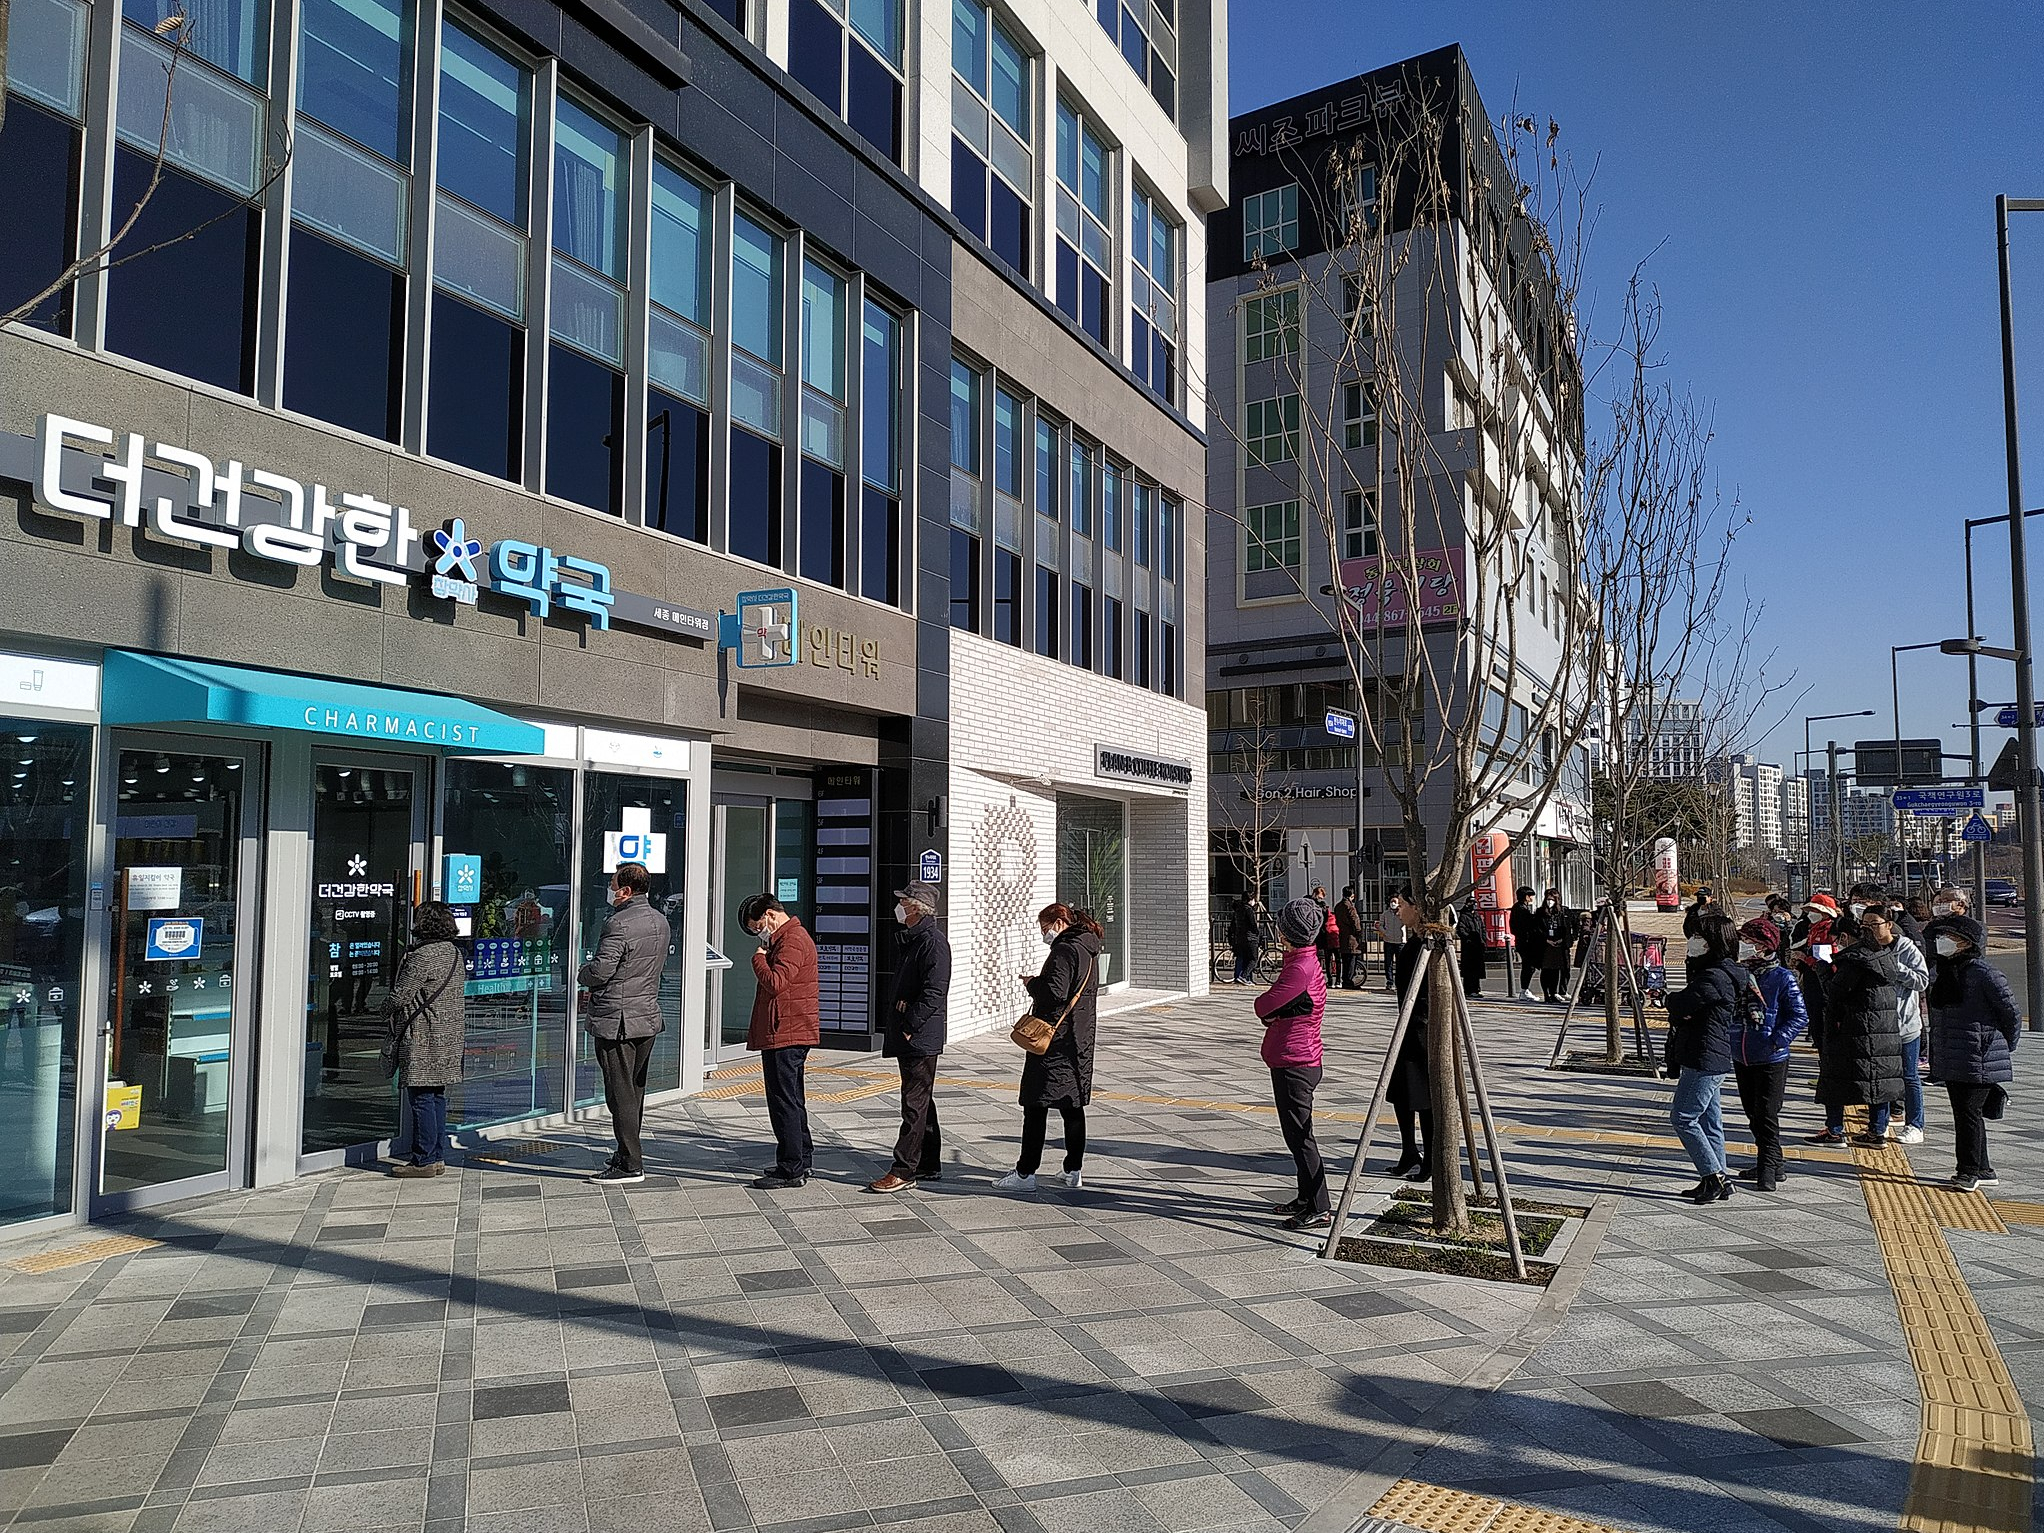 People lined up at a pharmacy to buy masks in Sejong City. Image Credit: Rickinasia on WikiMedia (Created 16 March 2020).